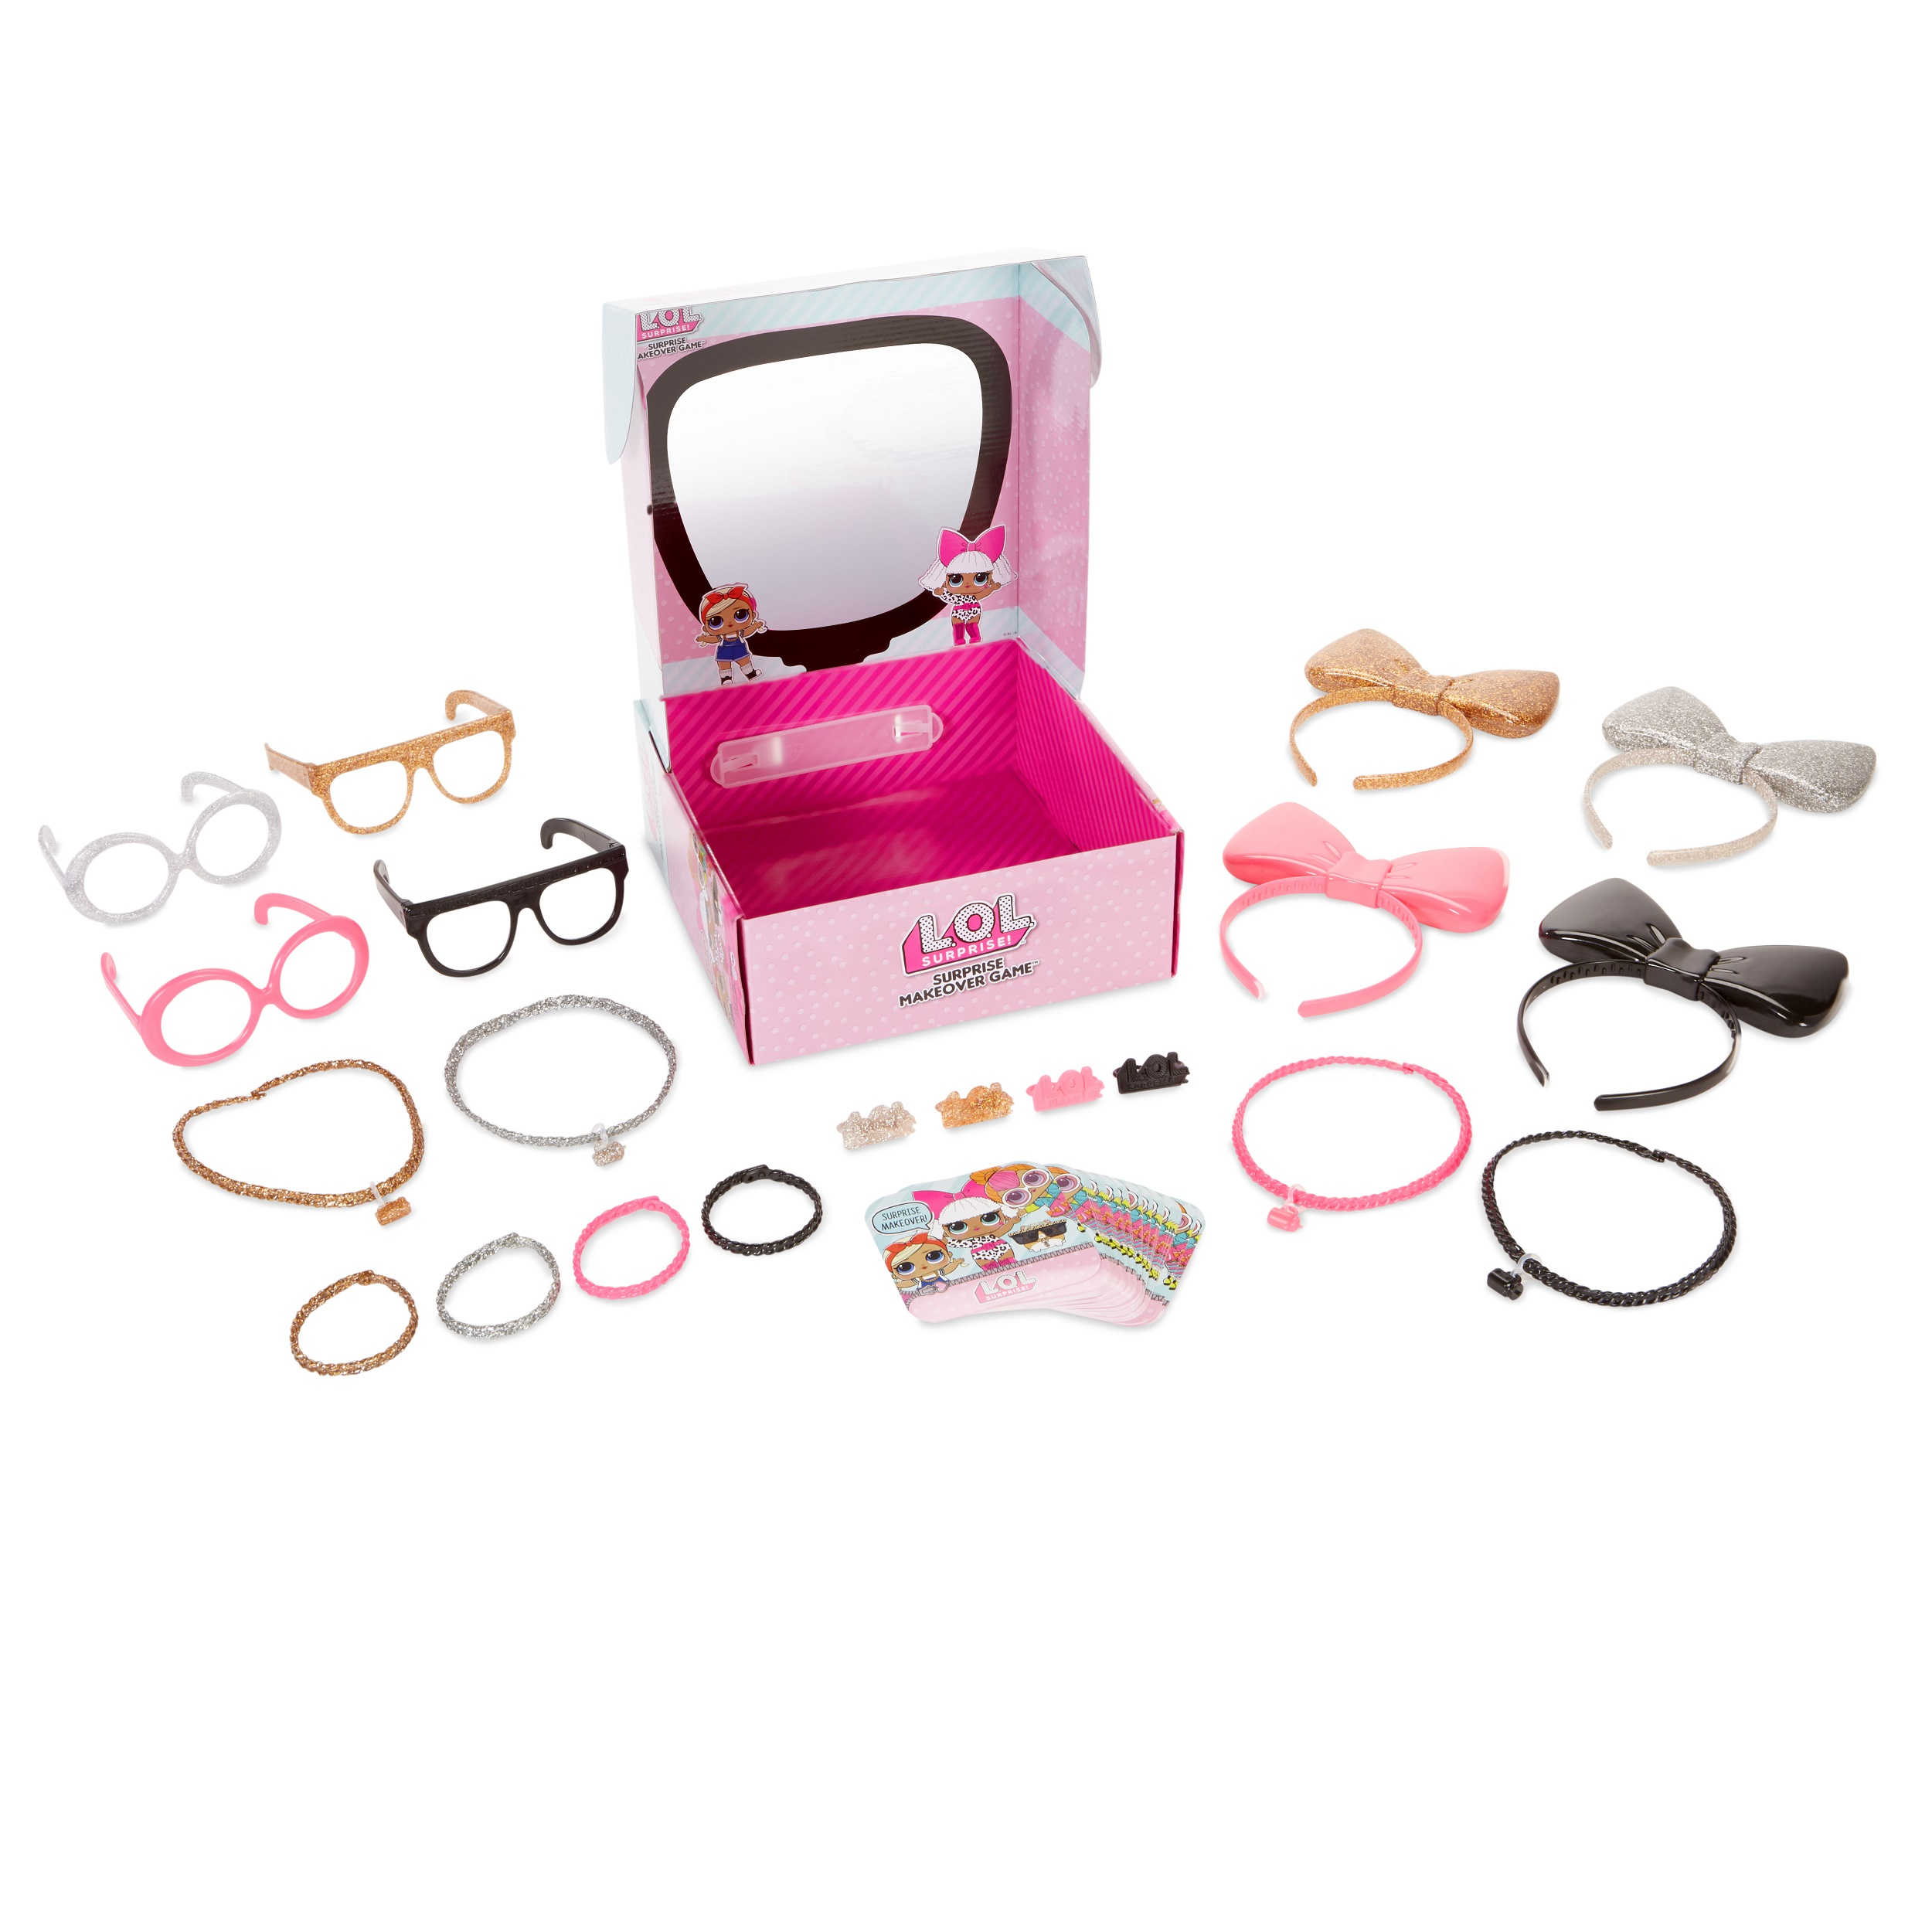 L.O.L. Surprise: Makeover Game with 20 + Exclusive Accessories